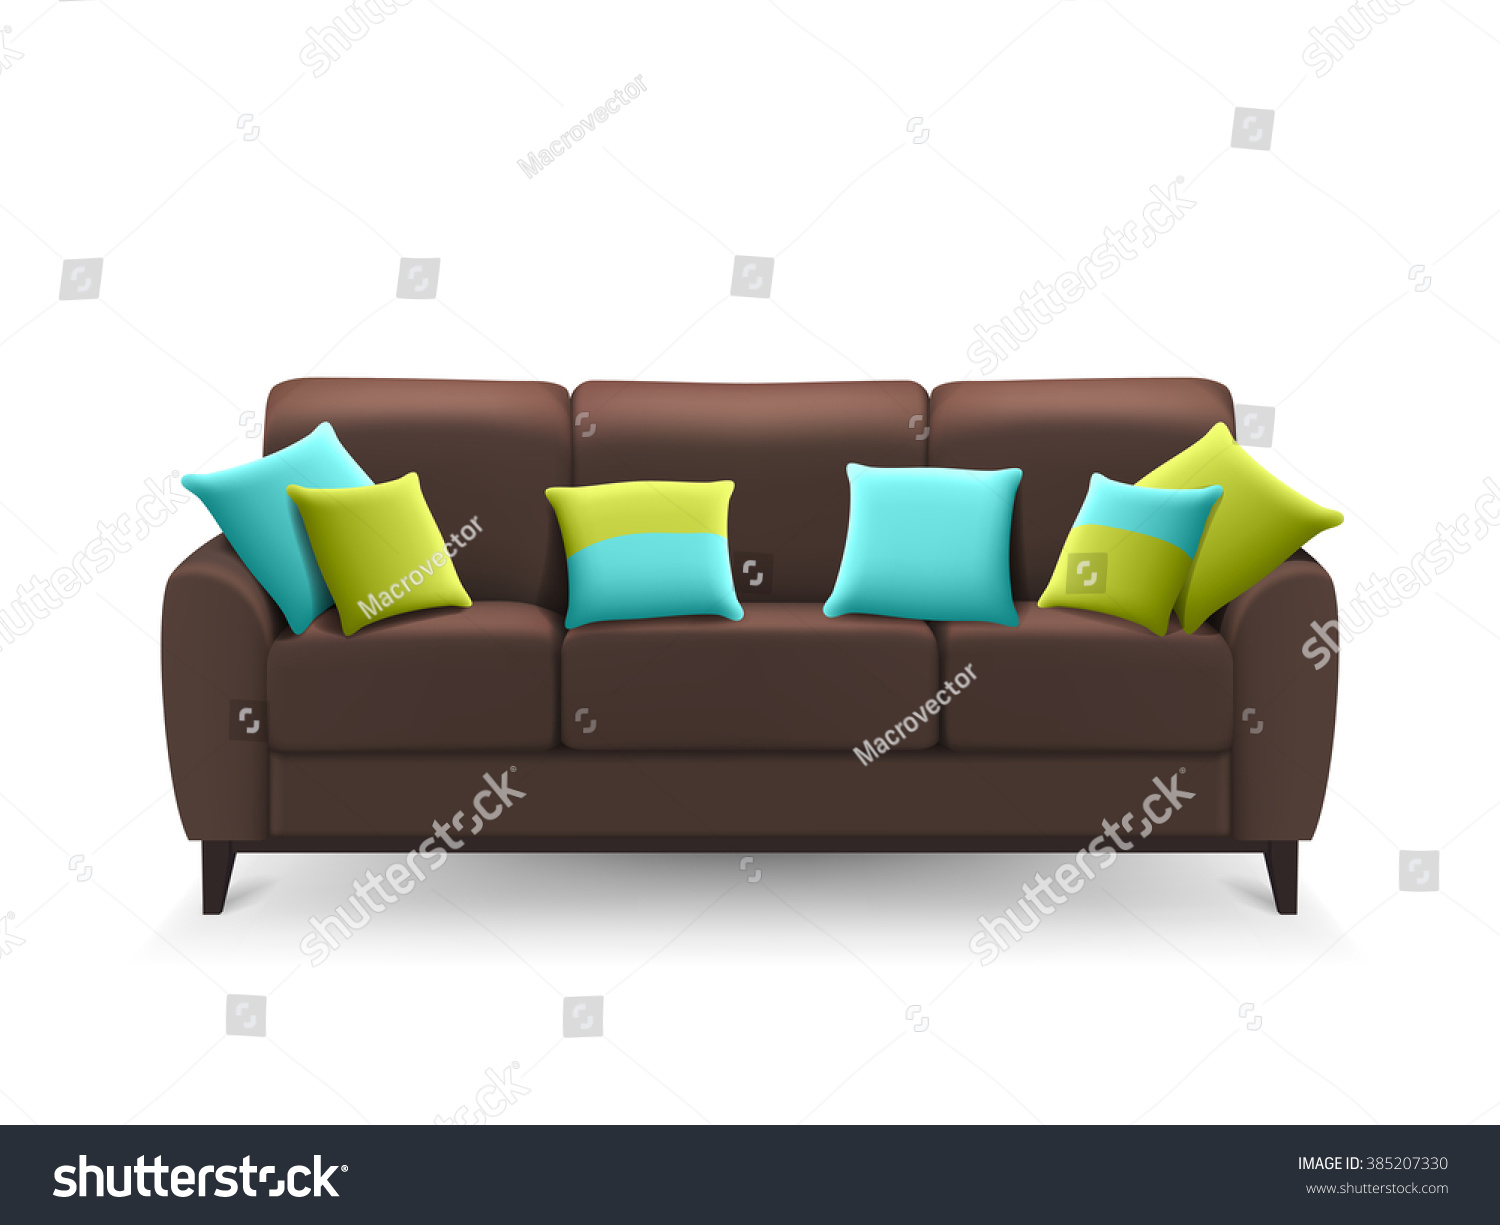 Brown Sofa Decorative Cushions Lounge Sitting Royalty Free